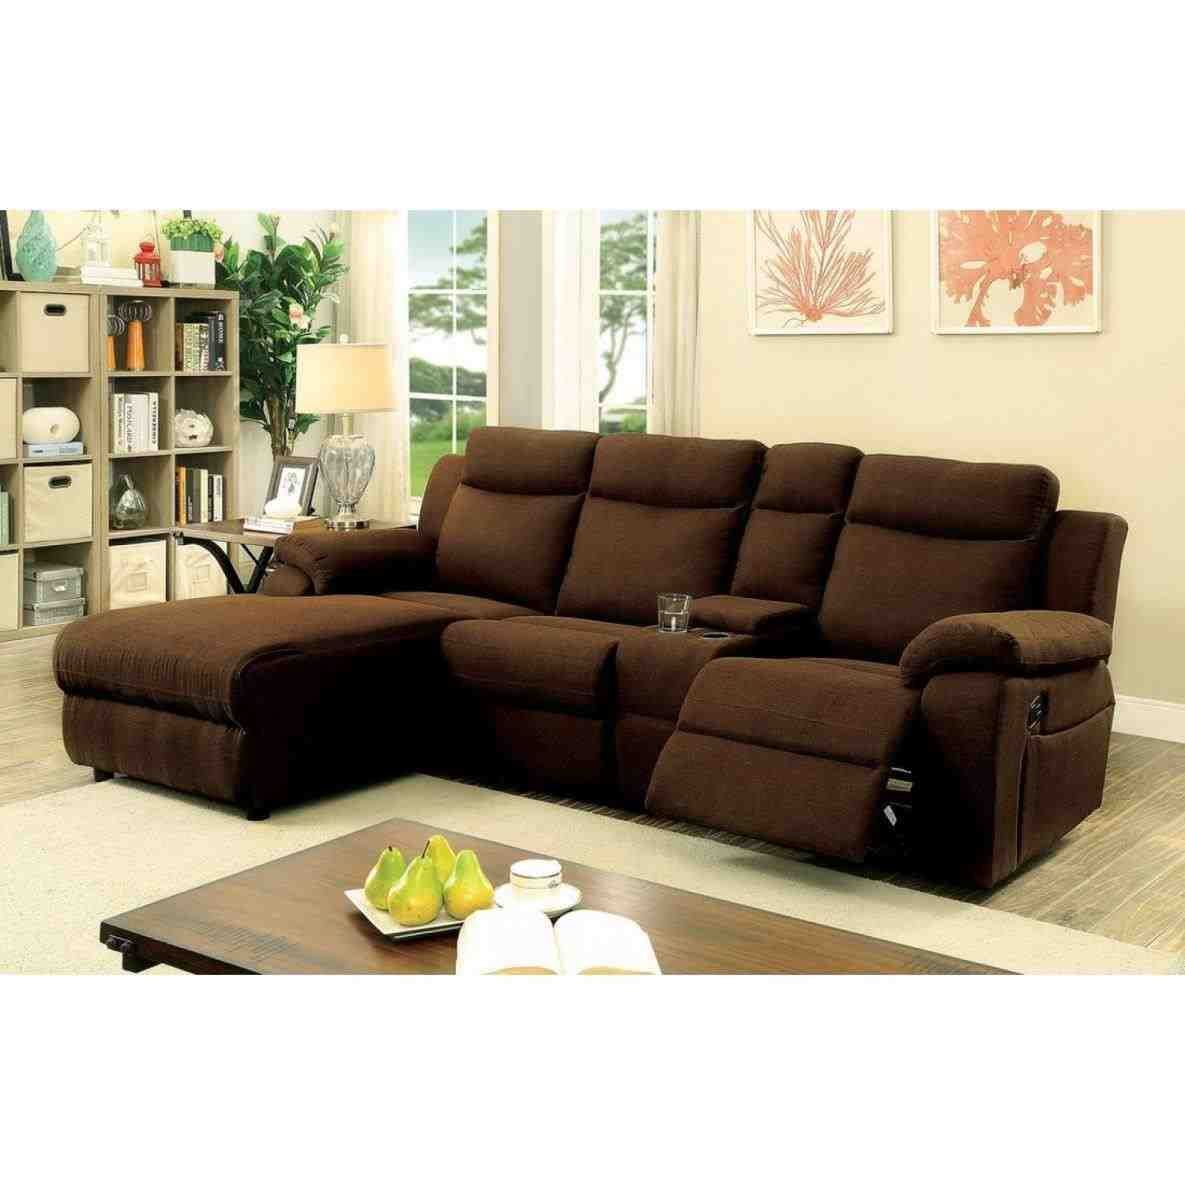 10 Living Room Upcycling Furniture Ideas Sectional Sofa With Chaise Sectional Sofa With Recliner Cheap Living Room Sets